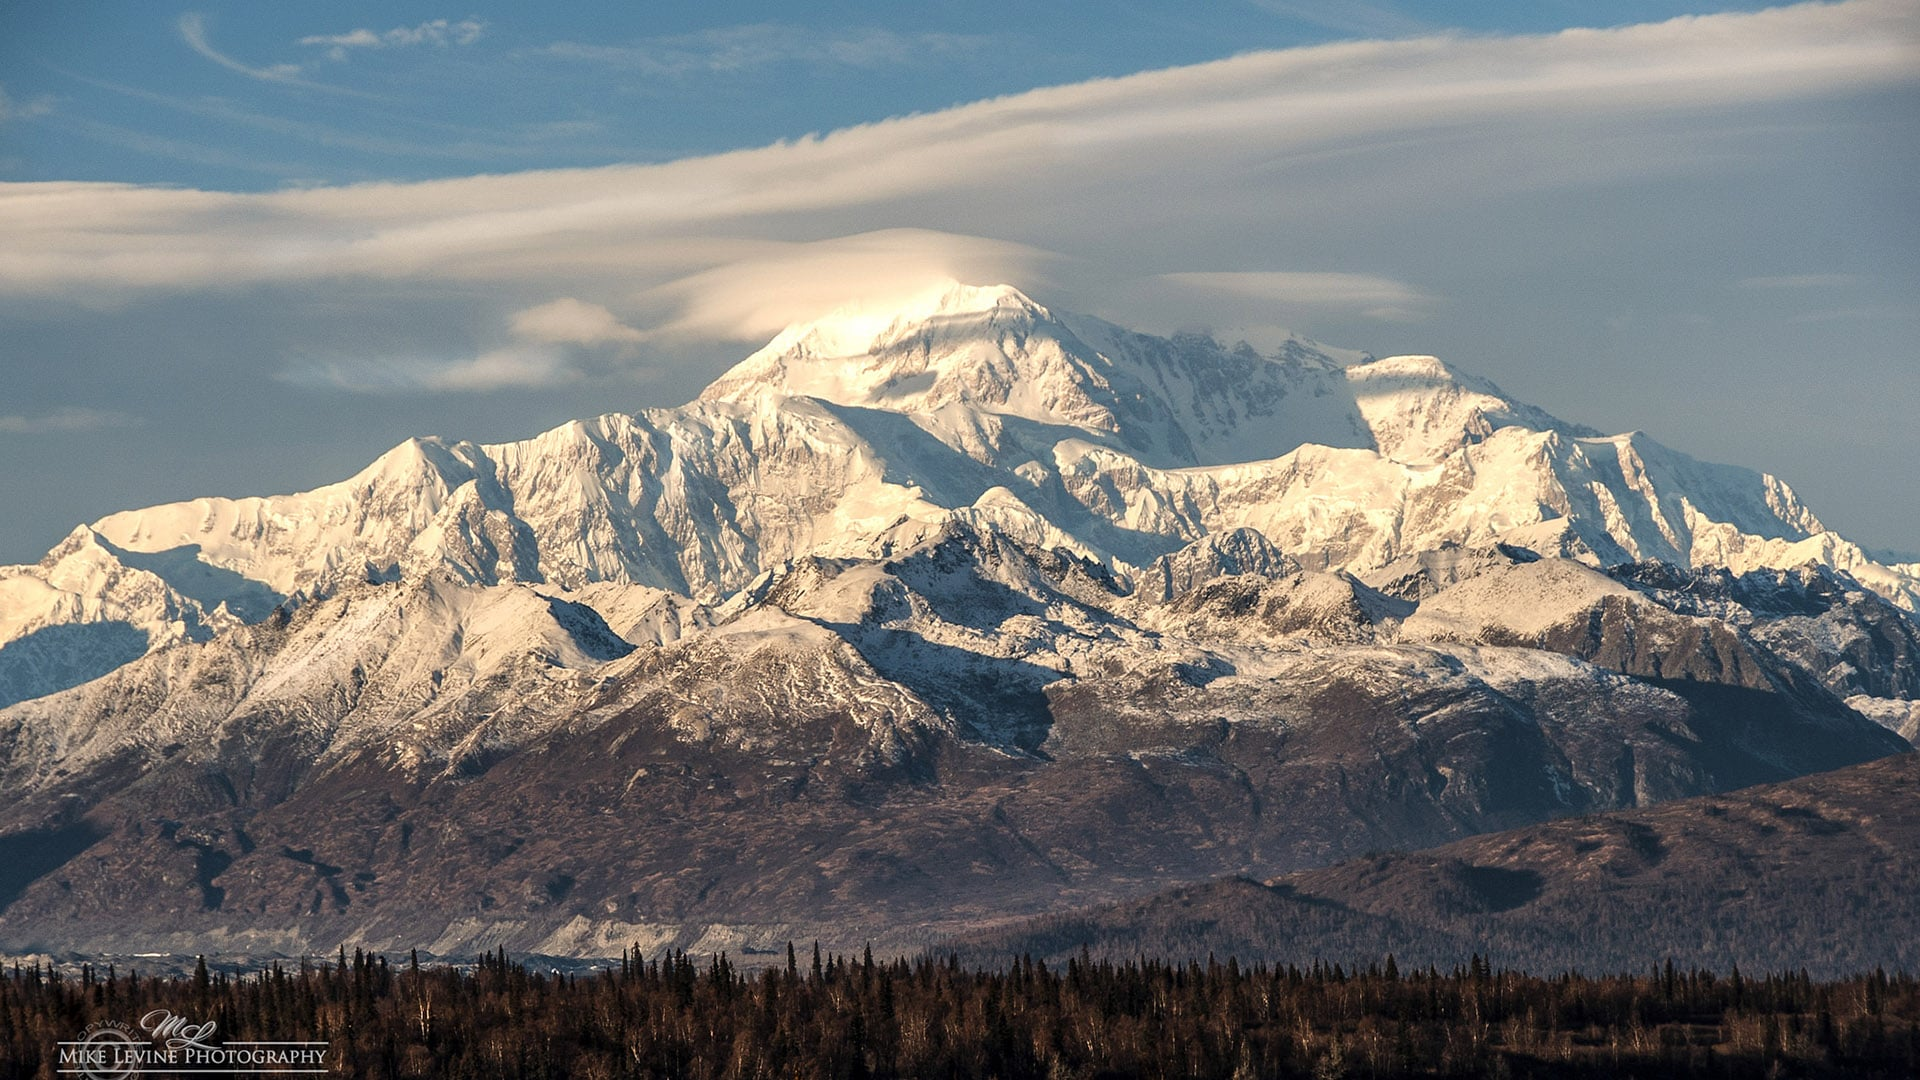 10 Mount Mckinley Denali Wallpapers High Quality Download